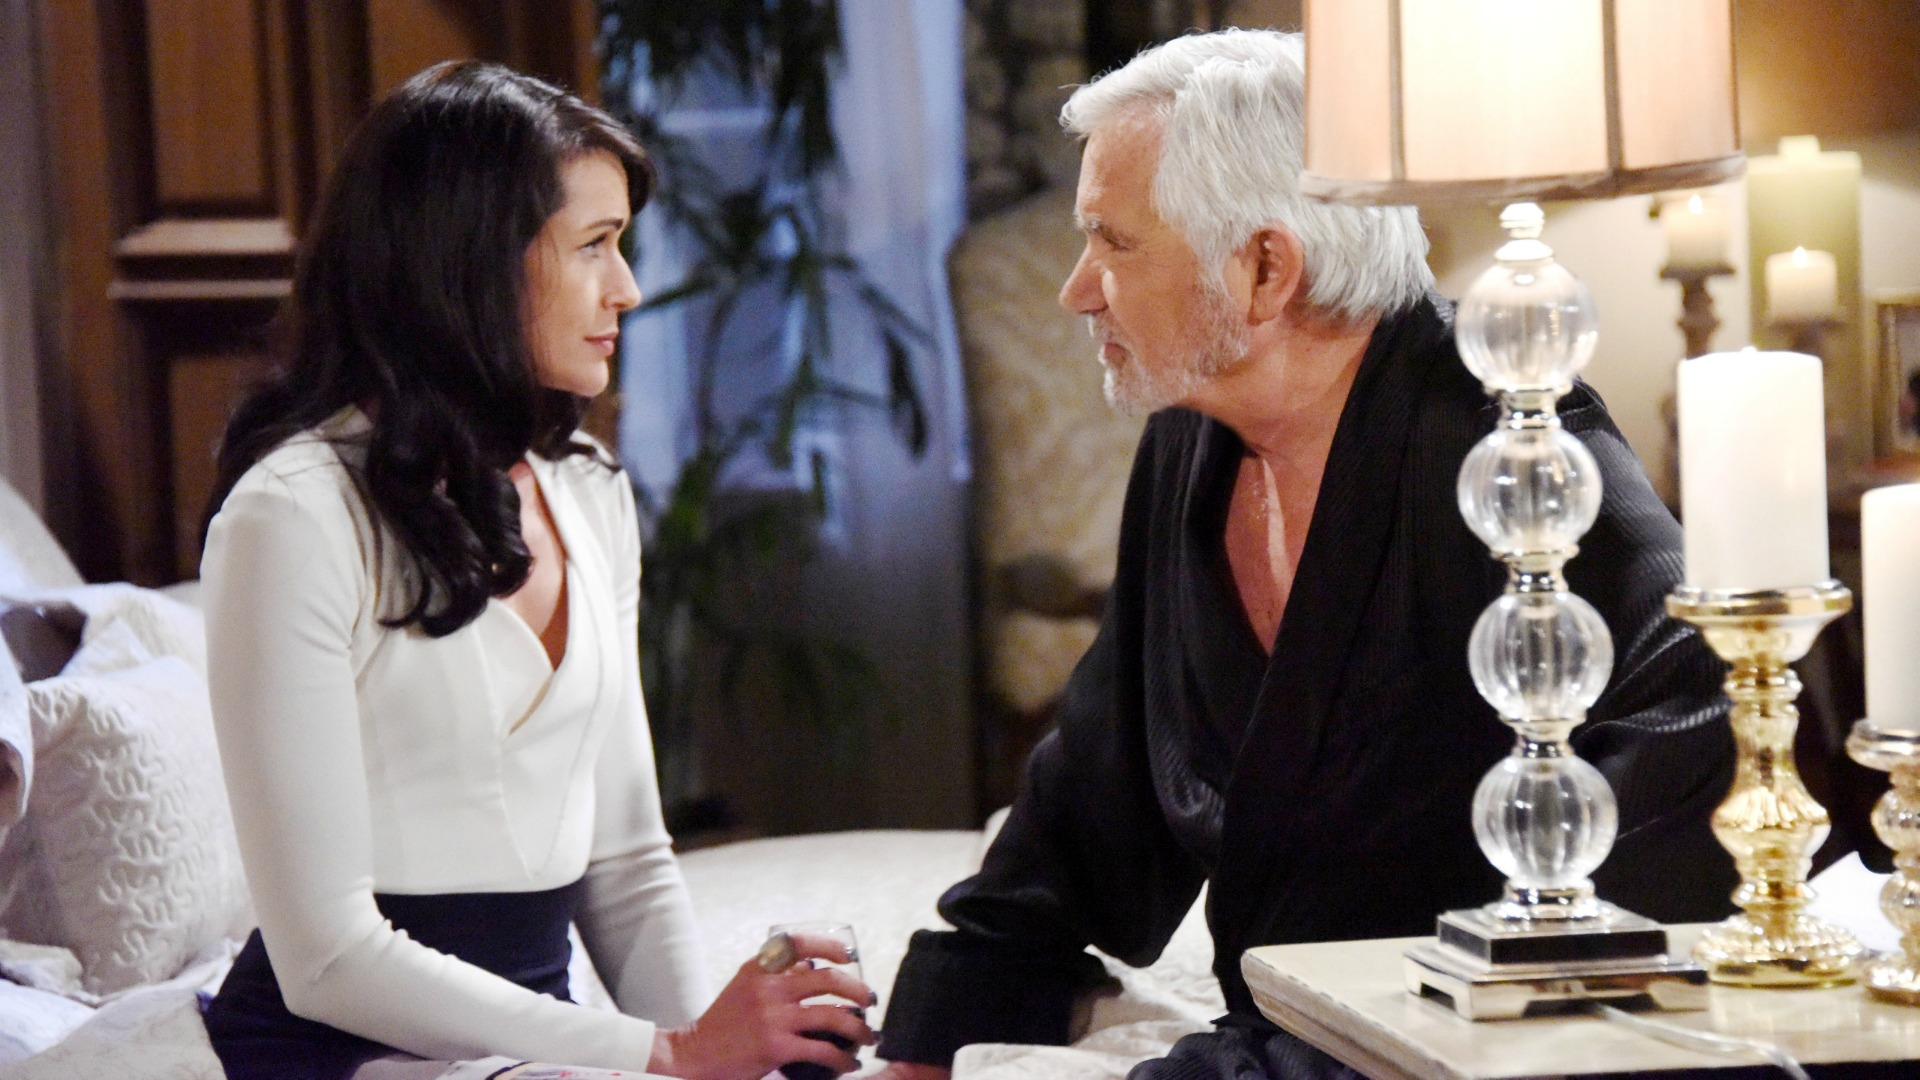 Quinn becomes jealous when she learns that another woman was in her home with Eric while she was away.